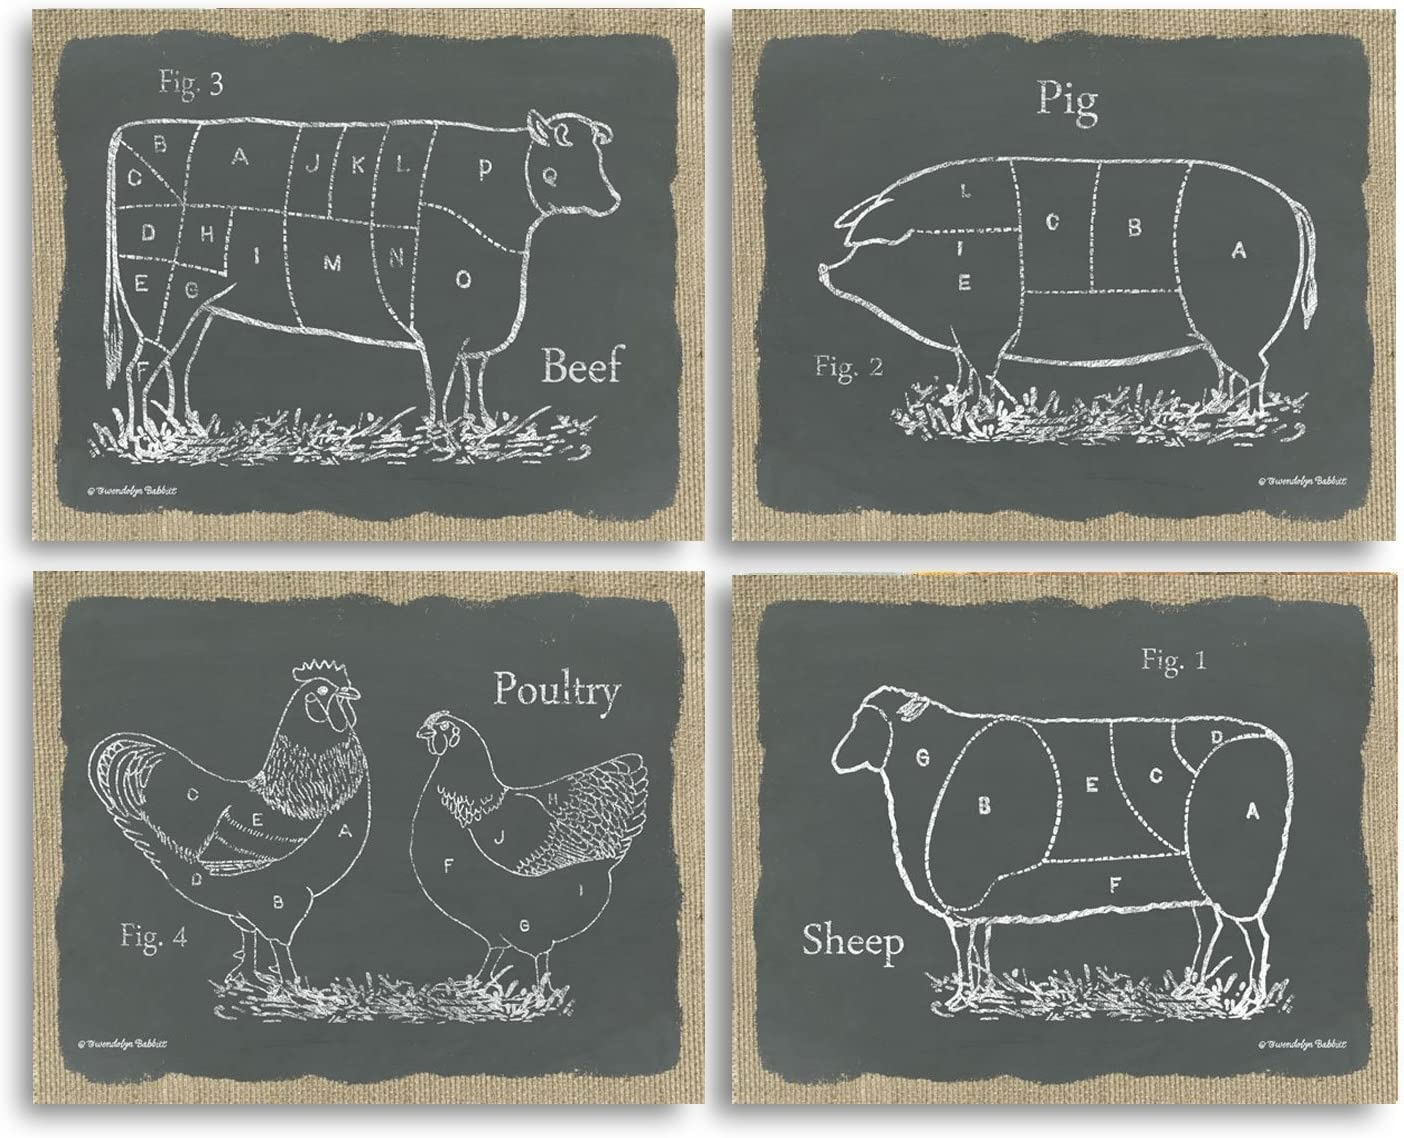 Gango Home Decor Chalkboard and Burlap Style Kitchen Art Sectioned Farm Animals Cow, Pig, Lamb, Chicken, Four Poster Prints